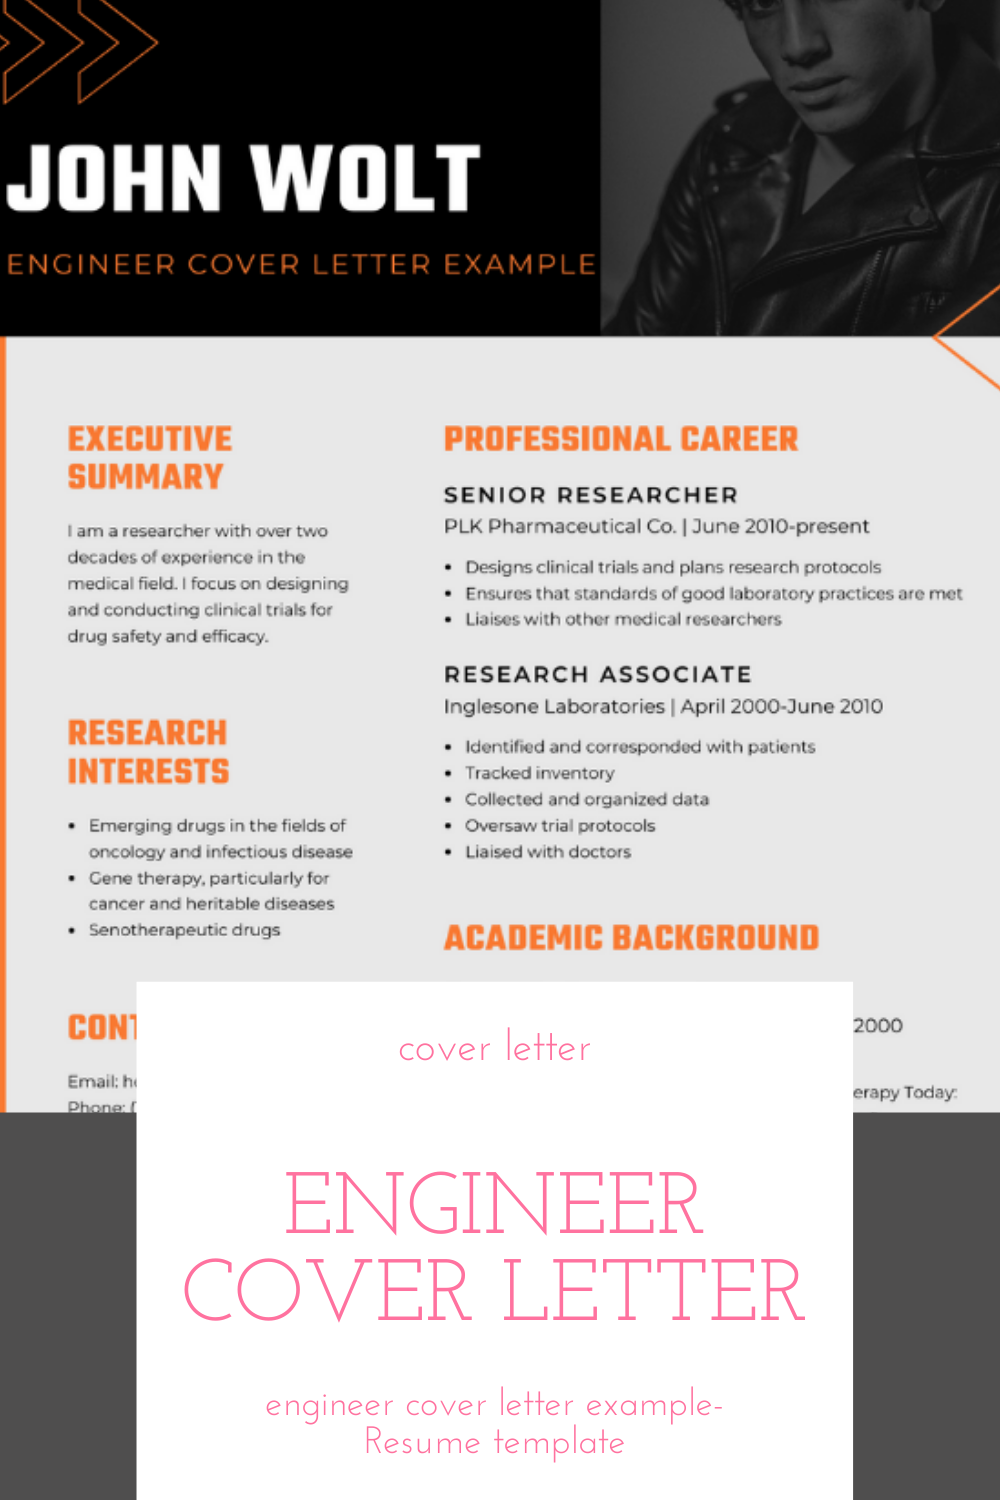 Engineer Cover Letter Example Resume 2021 Template For Engineer Cover Letter Example In 2021 Cover Letter Example Good Laboratory Practice Cover Letter